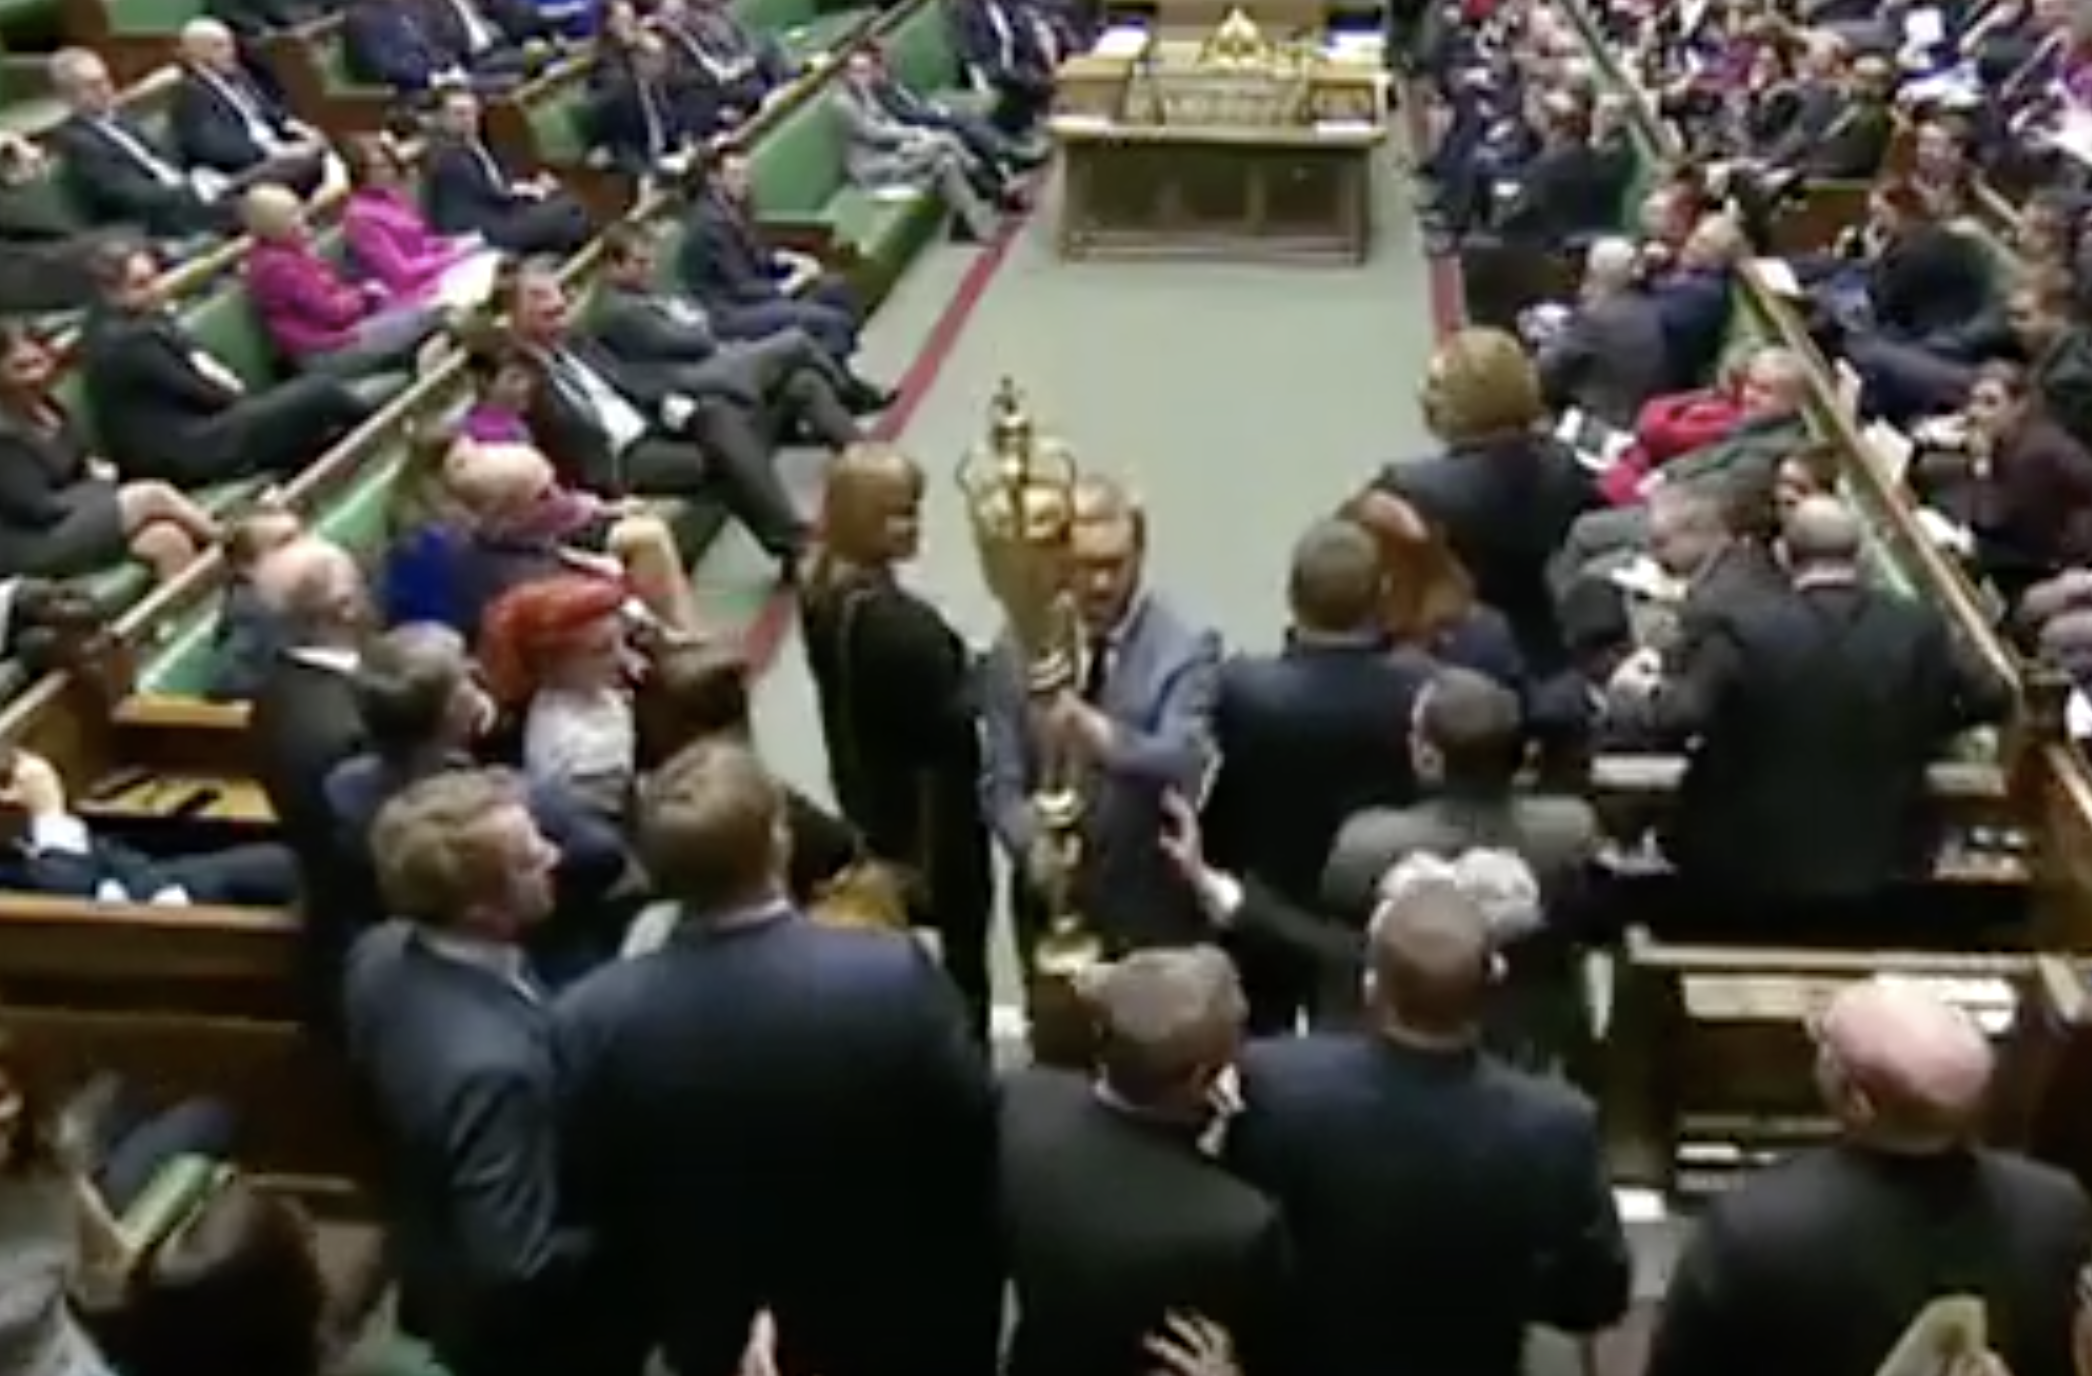 Labour MP booted out of Commons after Brexit mace protest